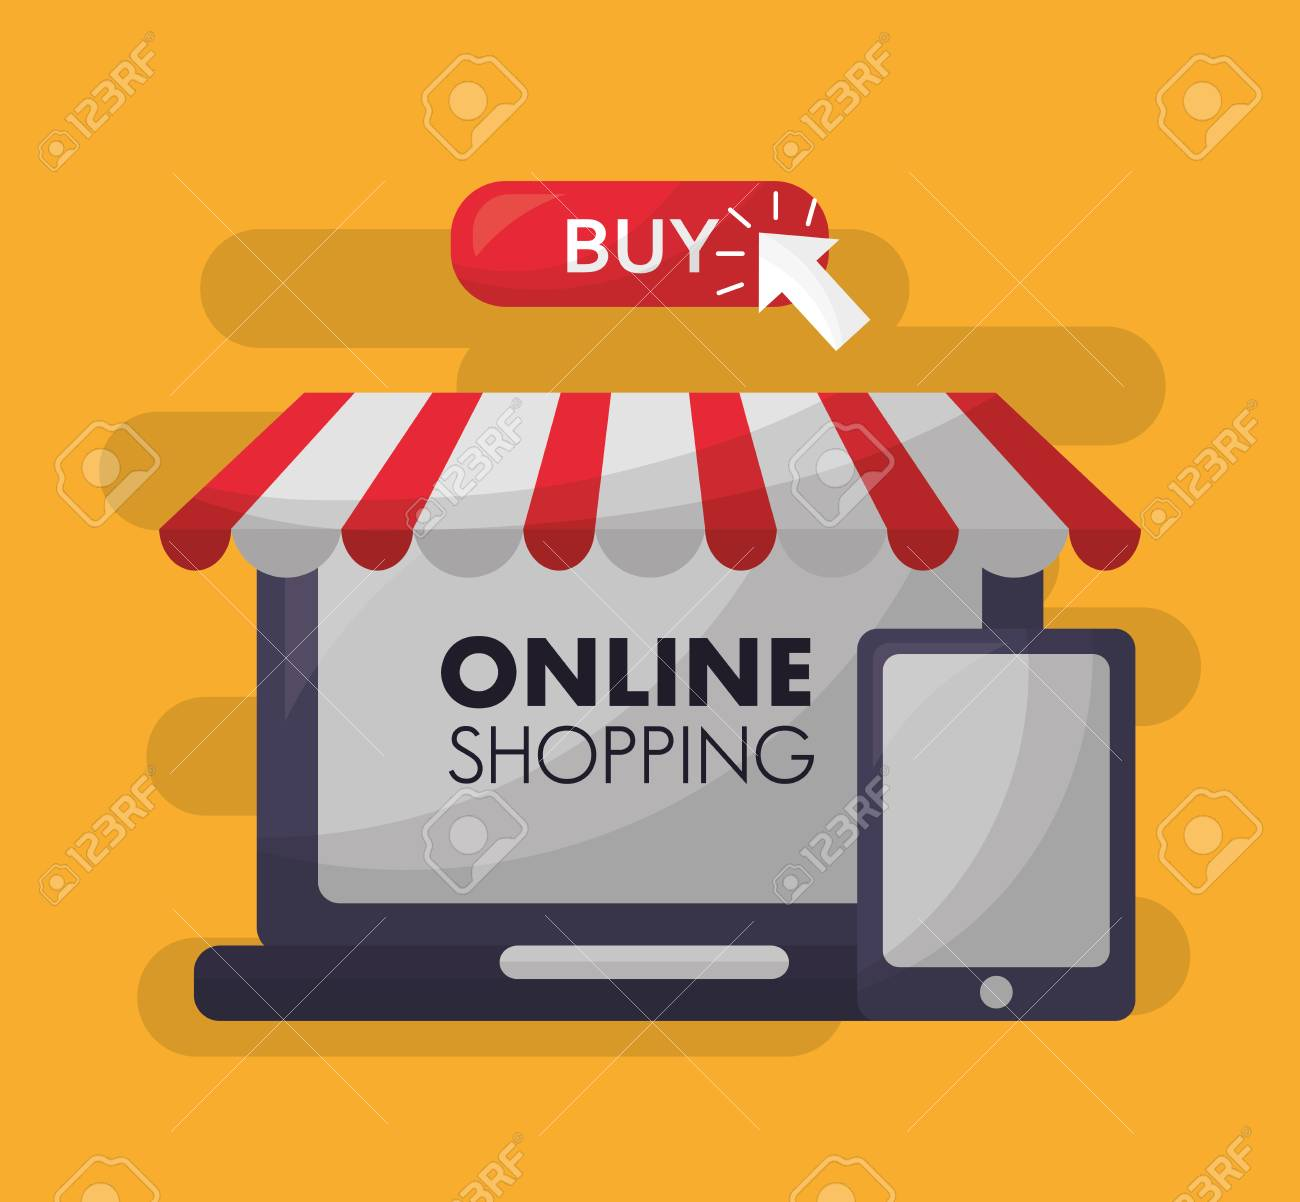 Online Shopping Shop Store Smartphone Buy Things Vector Illustration  Royalty Free Cliparts, Vectors, And Stock Illustration. Image 112301681.